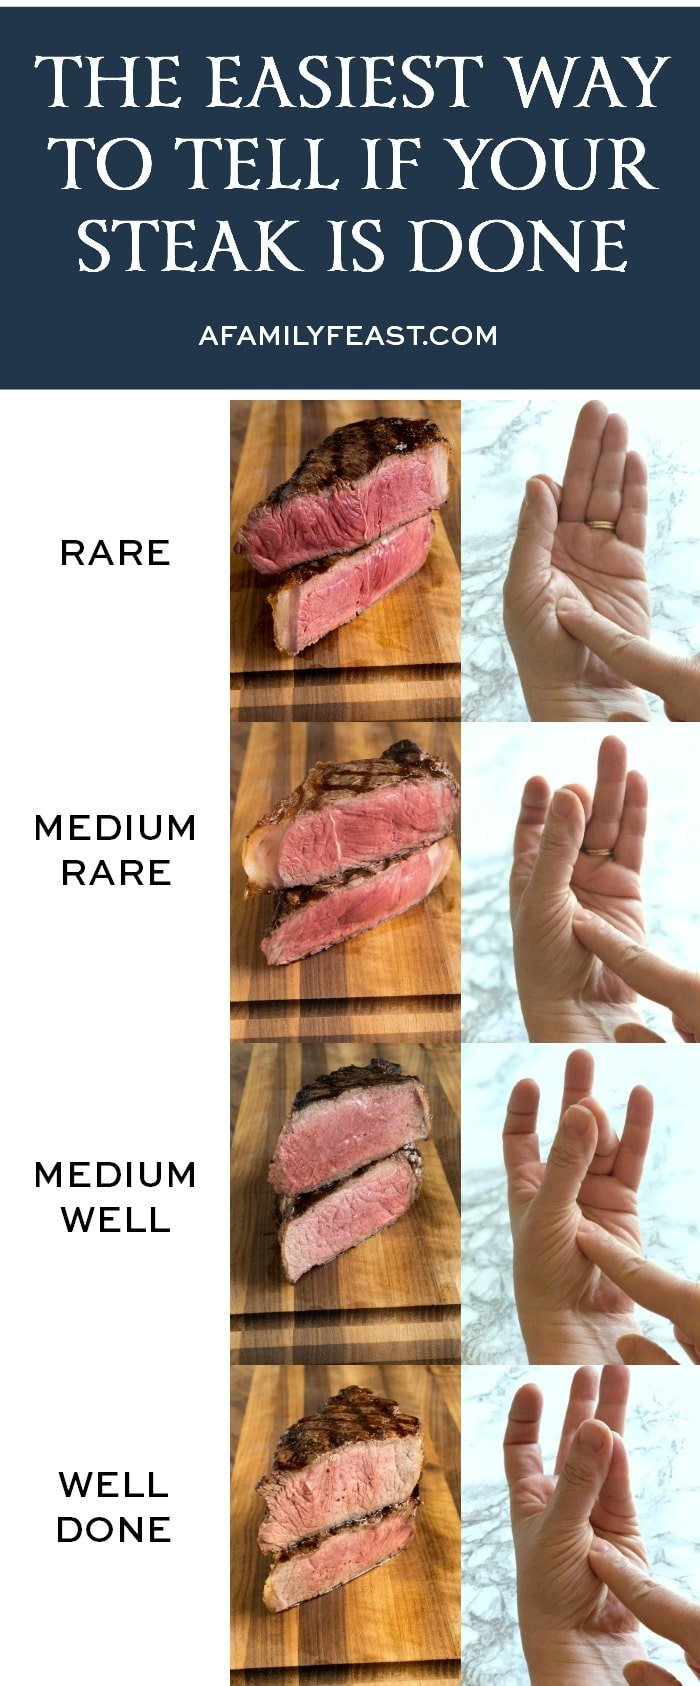 Photo Chart Showing Easiest Way to Tell When your Steak is Done